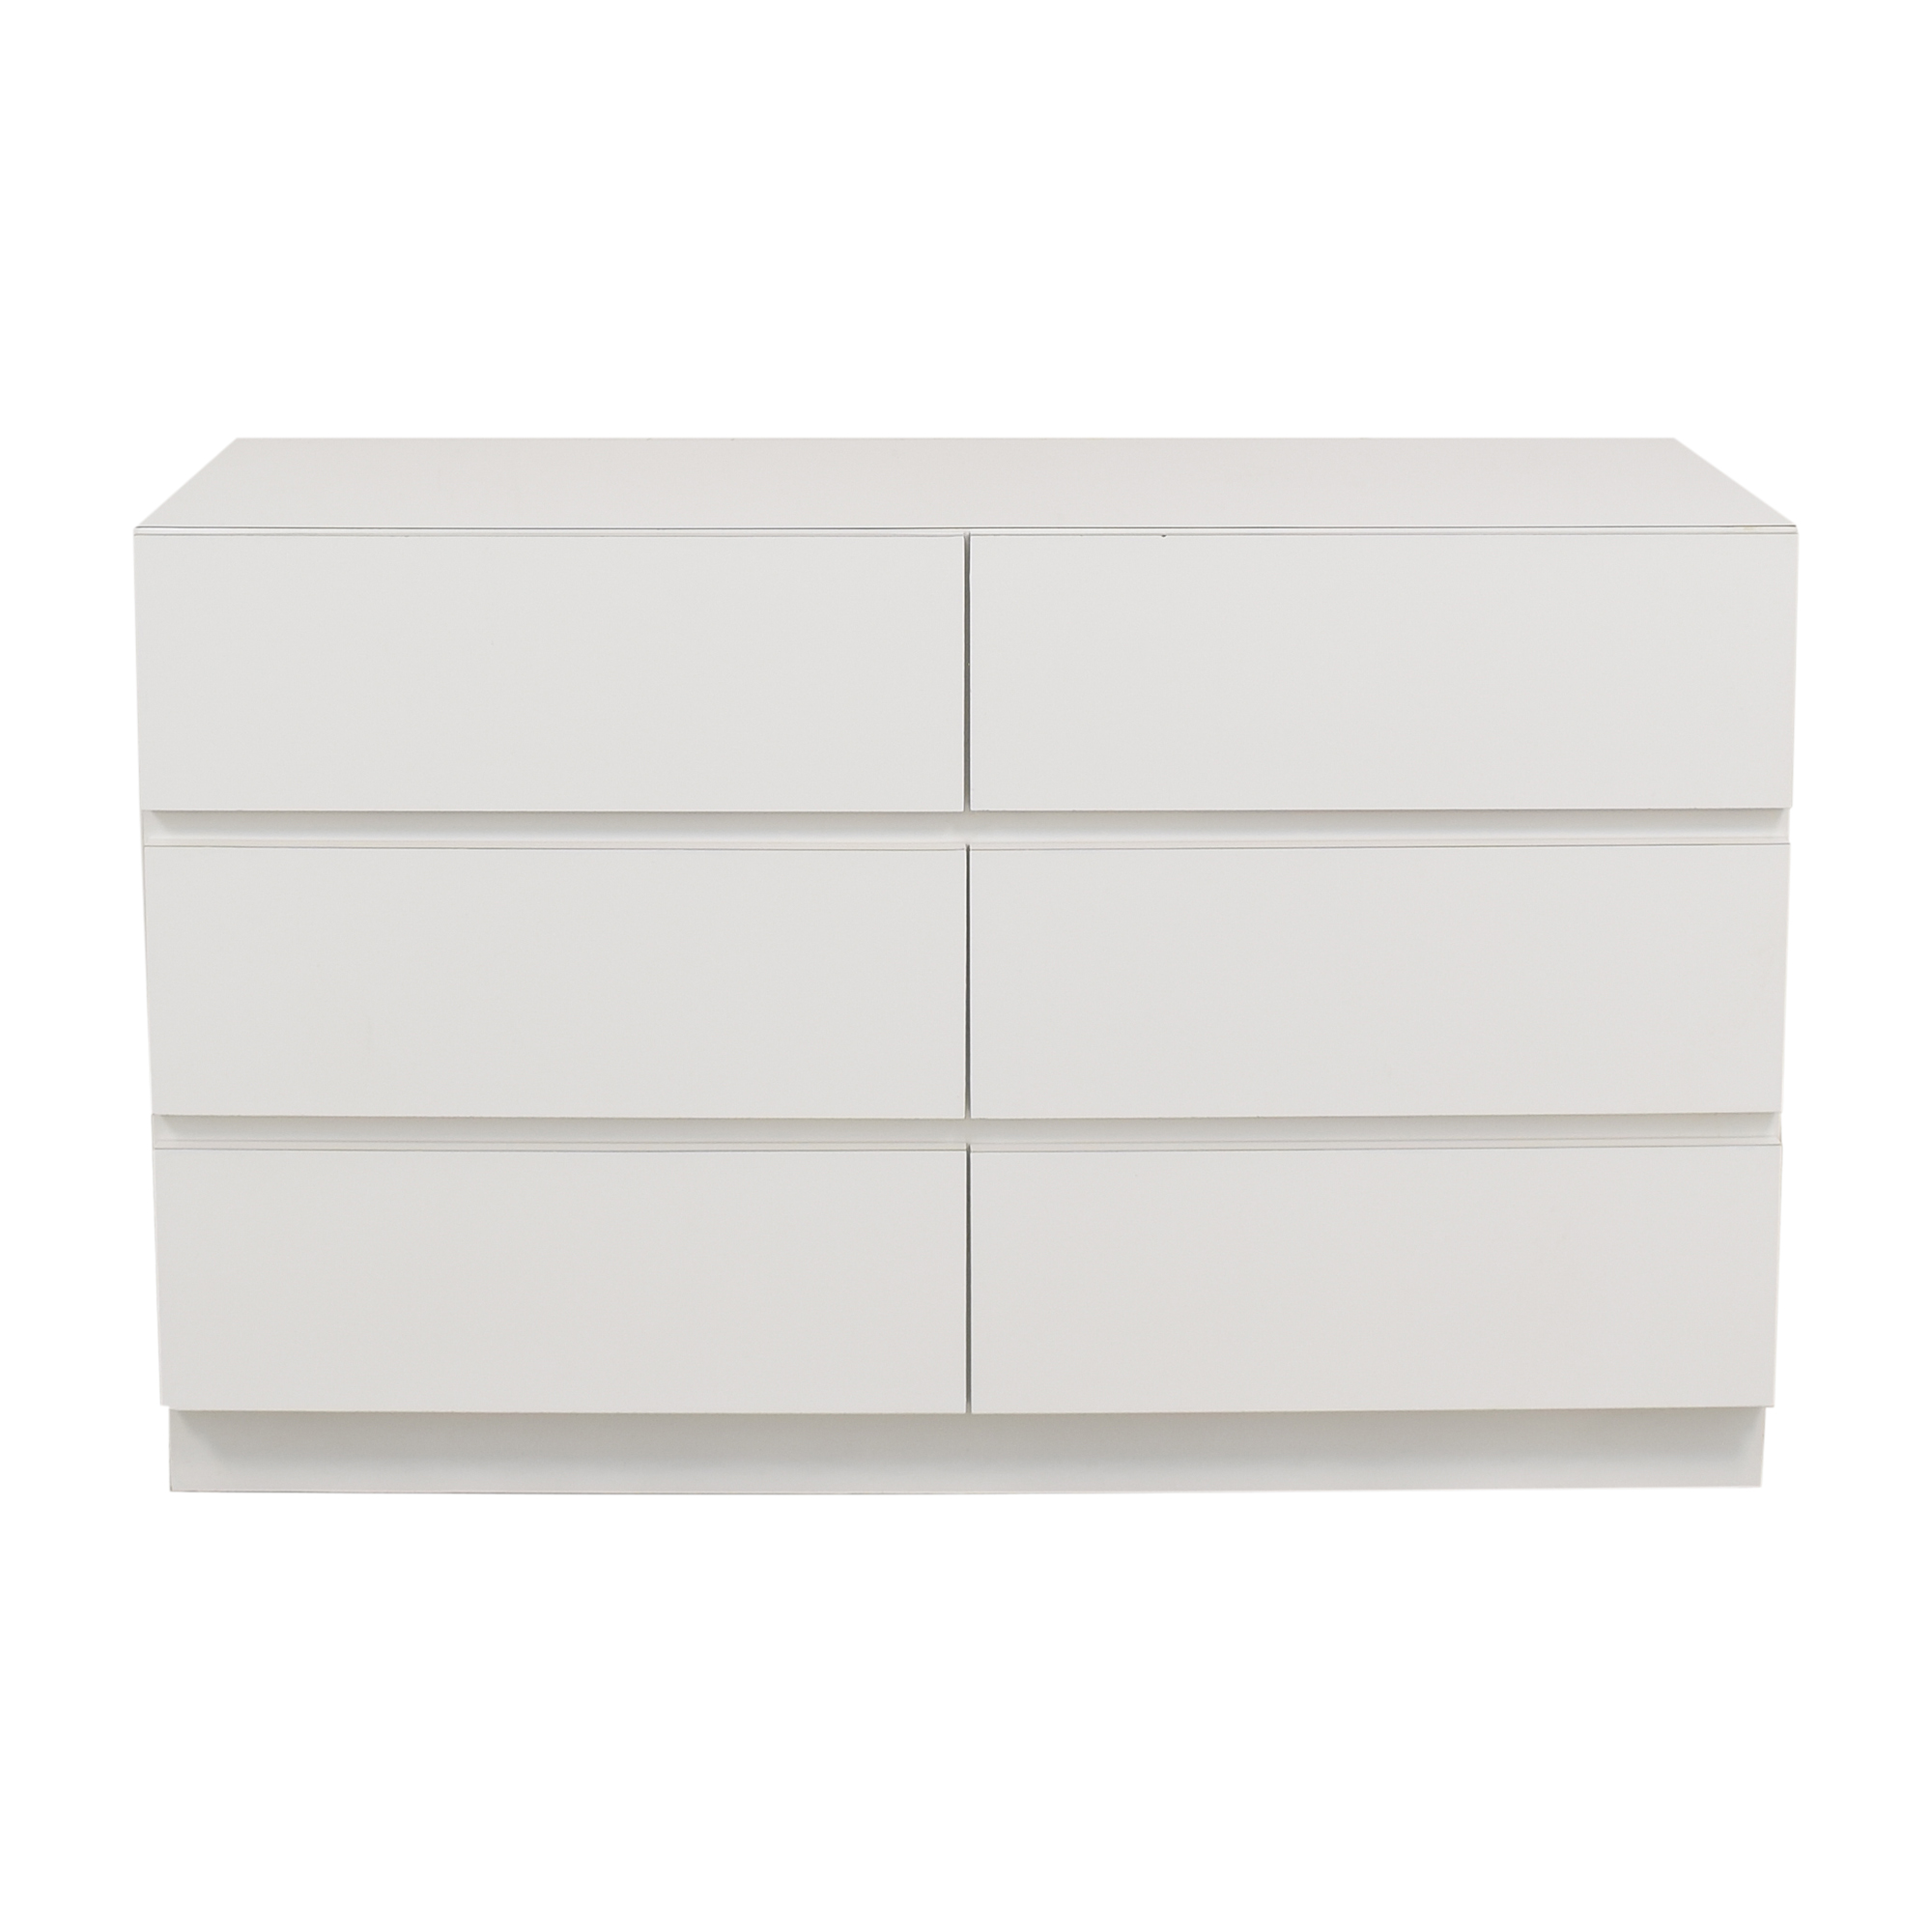 Modern Six Drawer Dresser dimensions